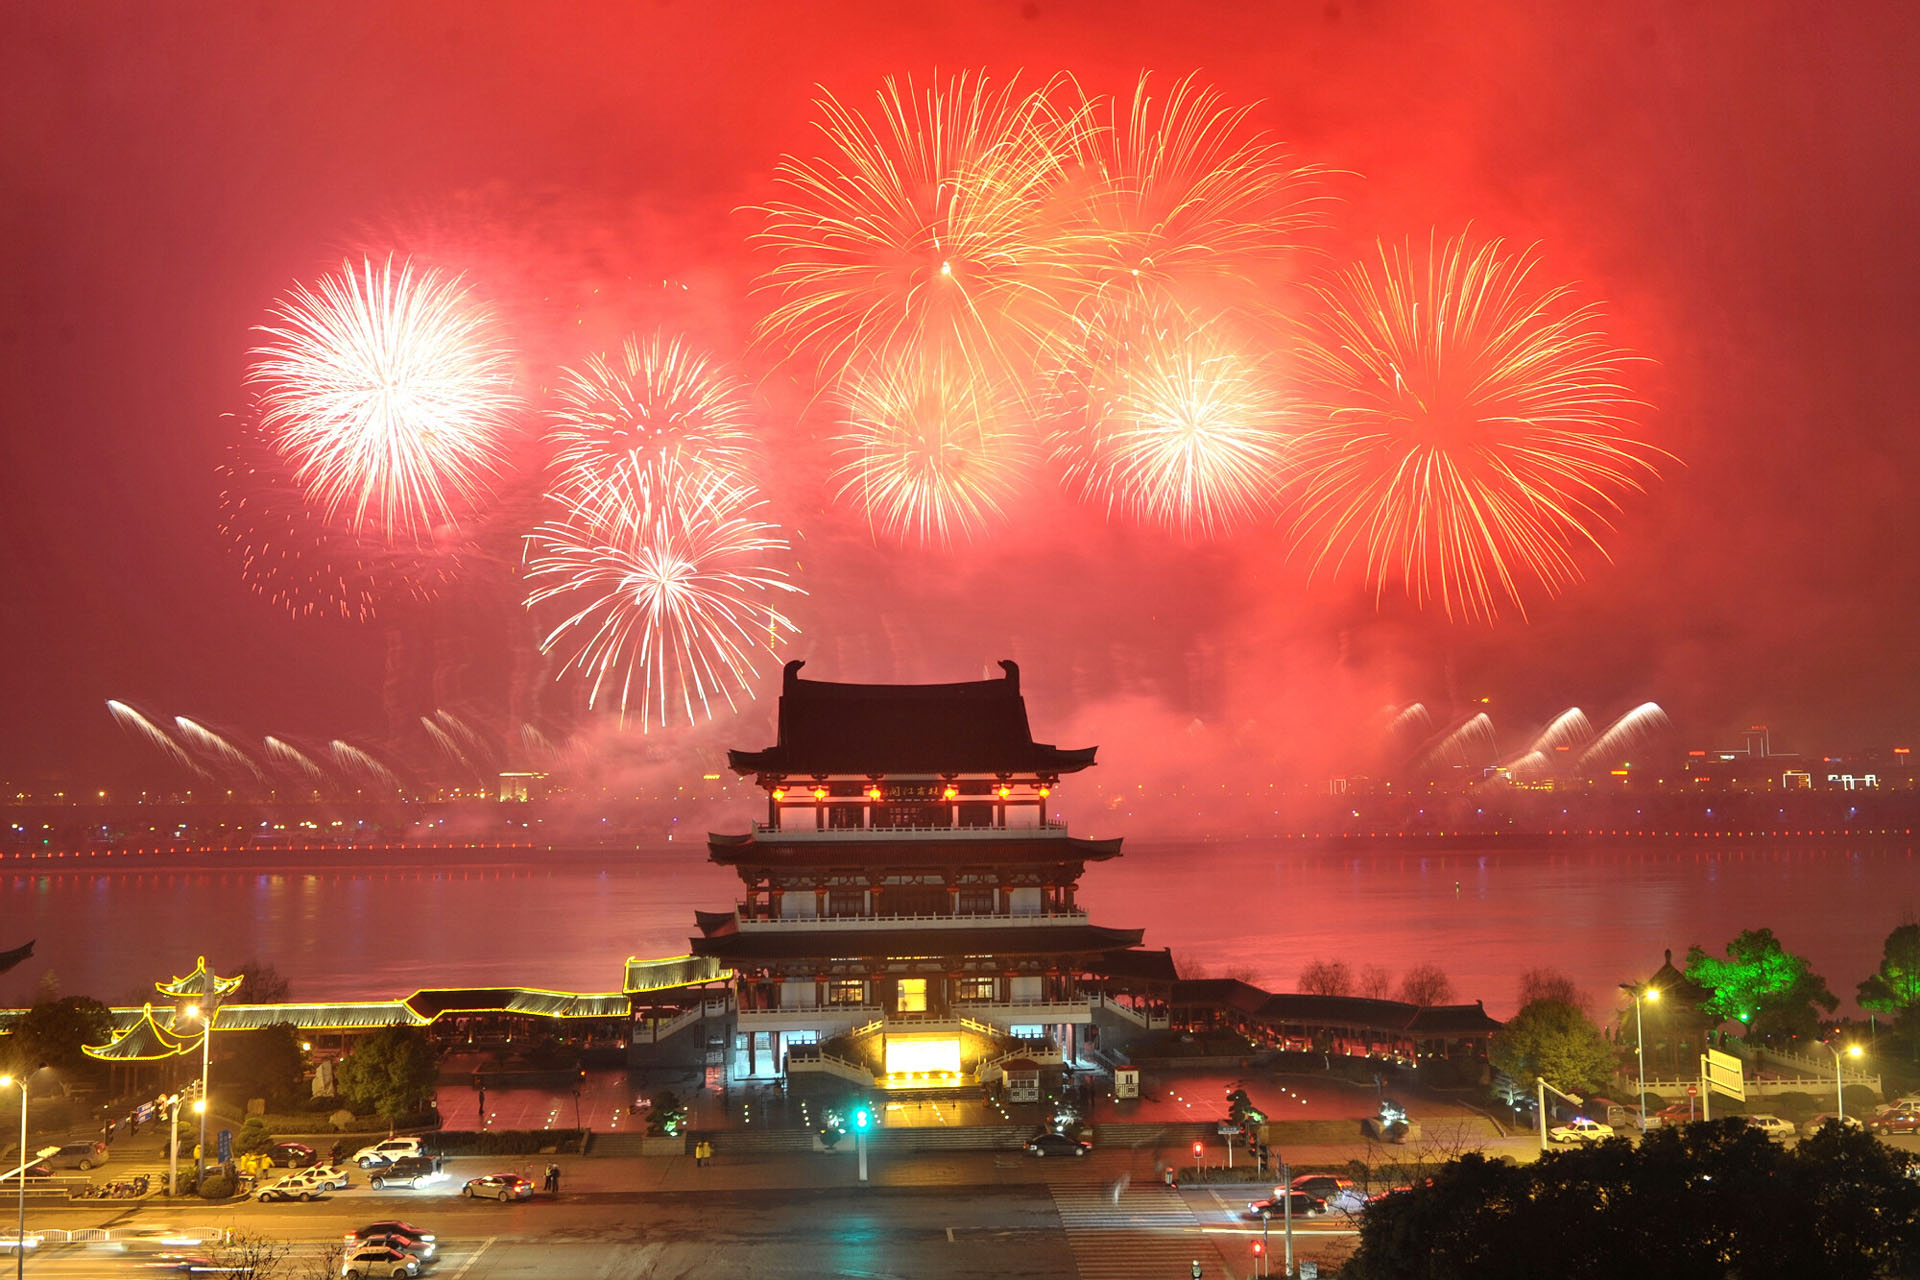 chinese fireworks Air pollution reached dangerous levels in 106 chinese cities at the height of the celebrations welcoming the lunar new year due to use of firecrackers and fireworks.